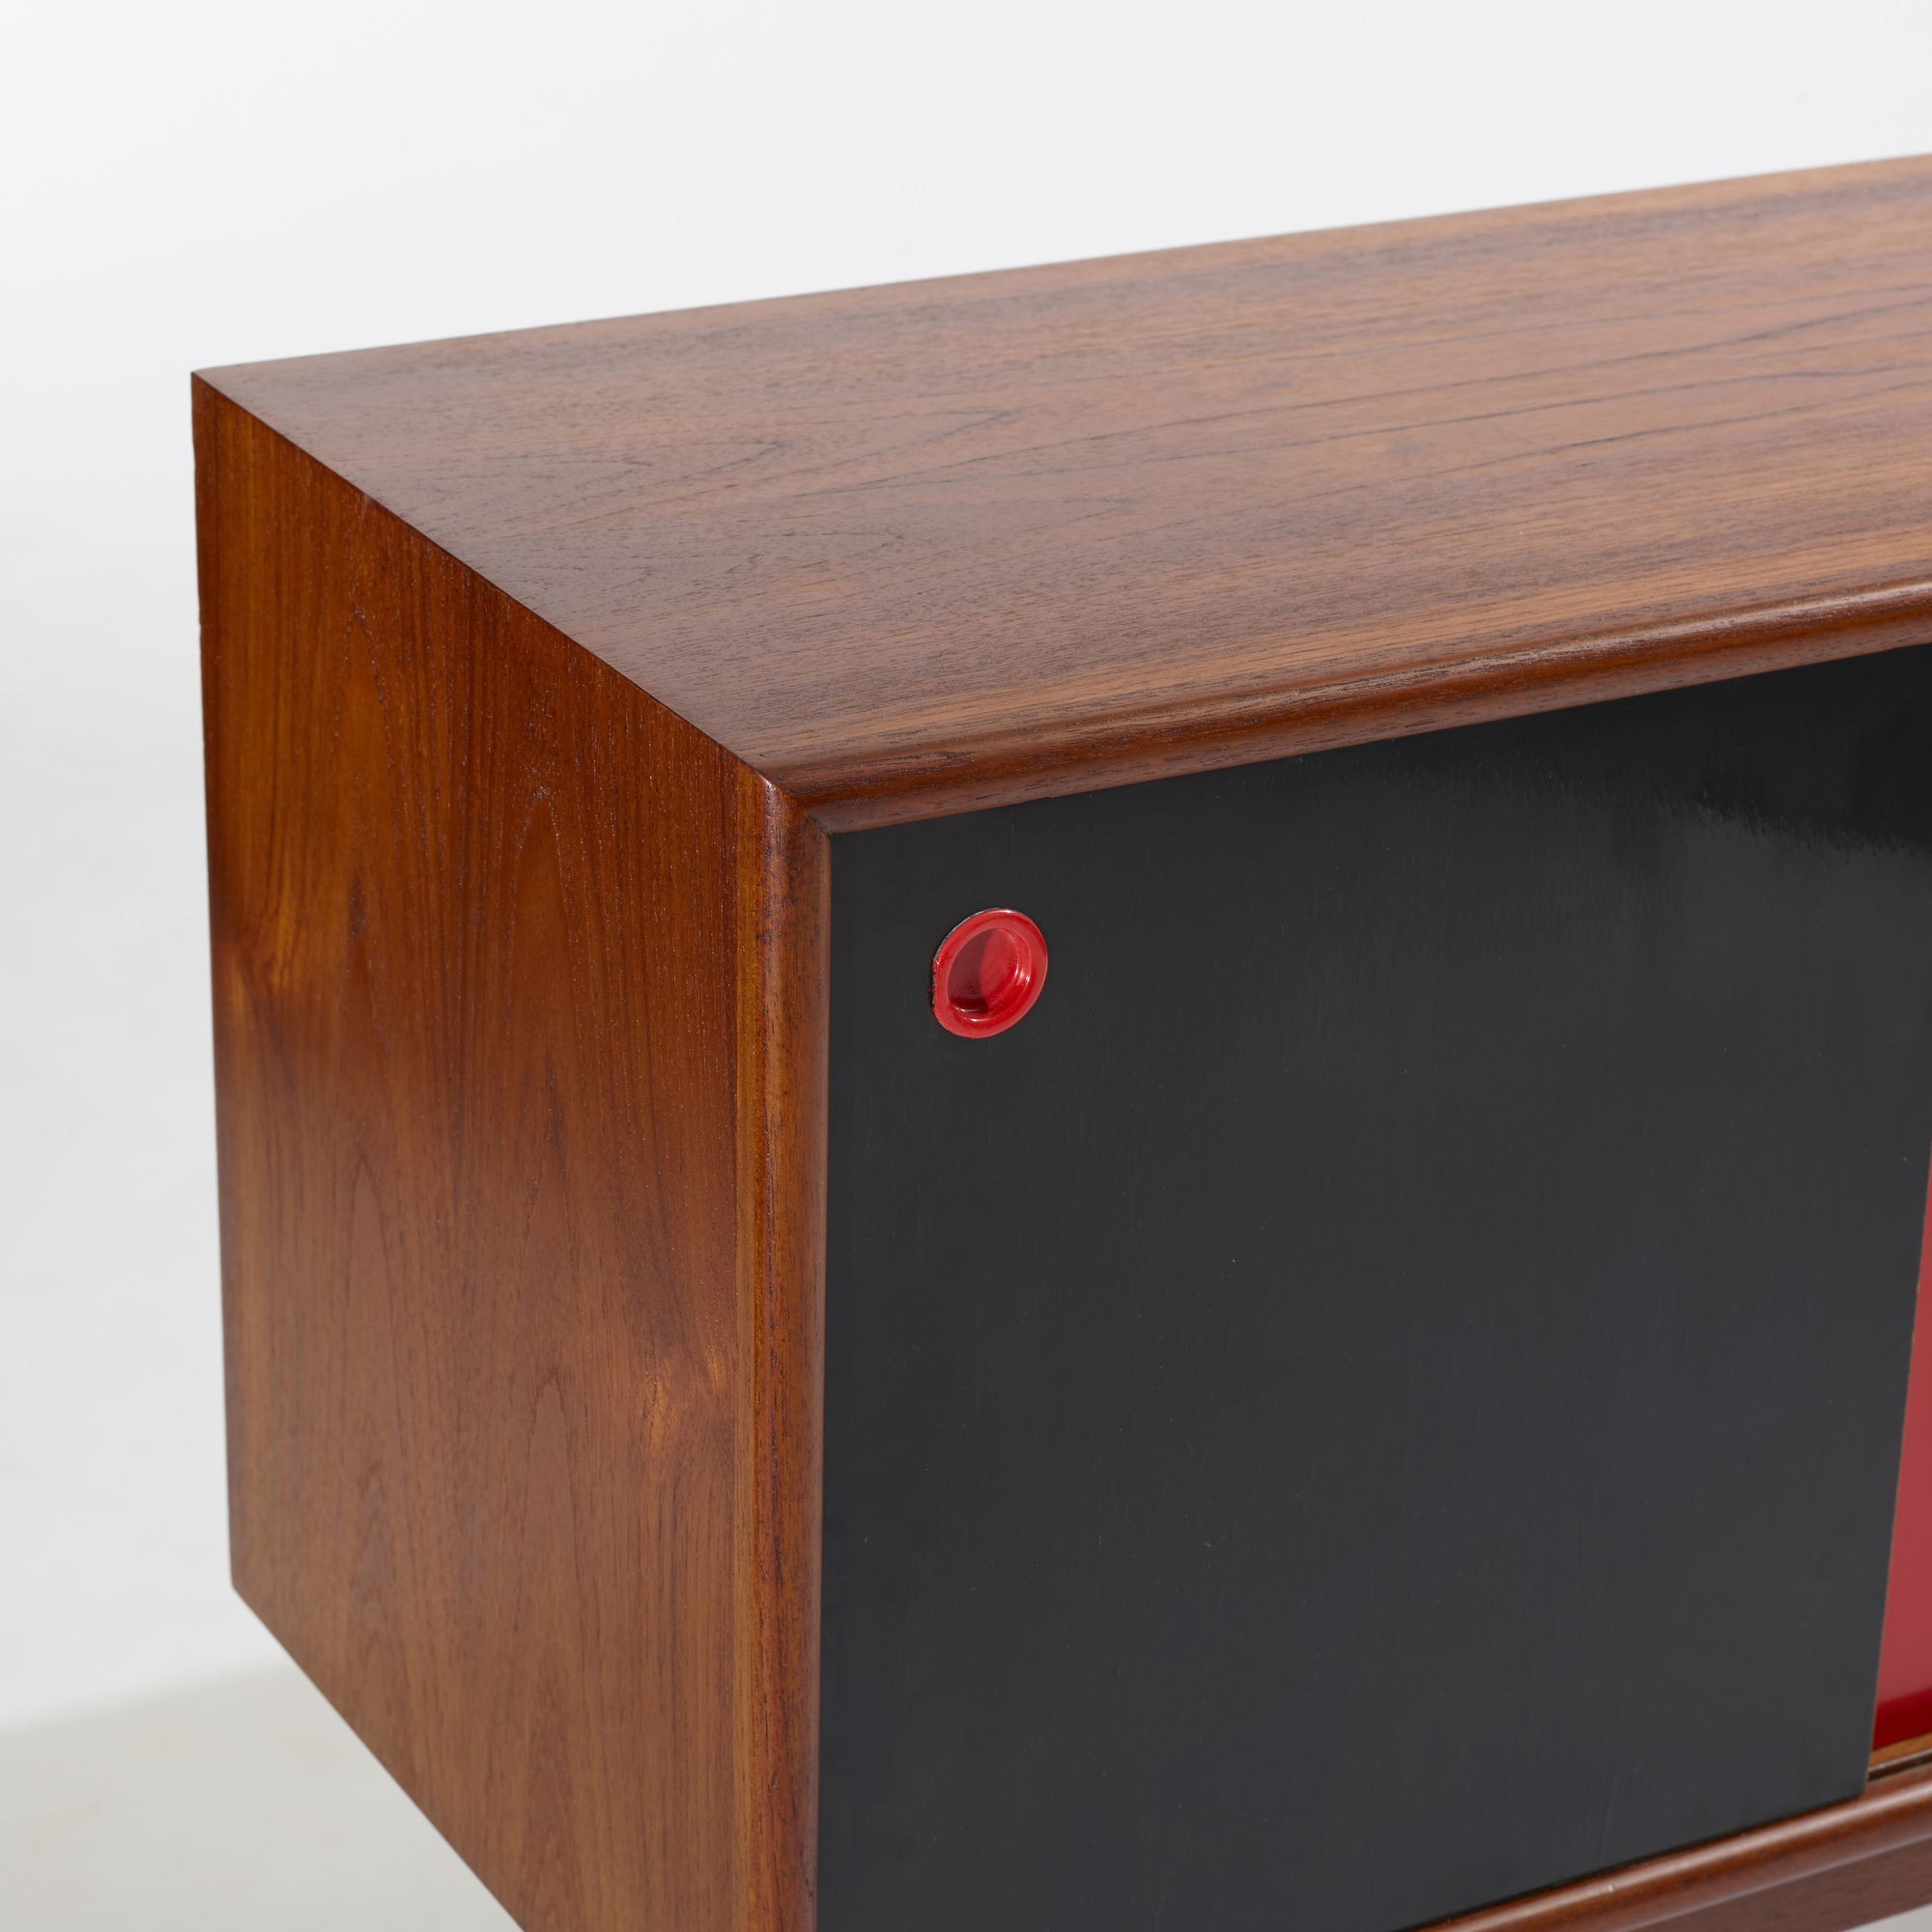 134: Arne Vodder, attribution / cabinet (3 of 3)